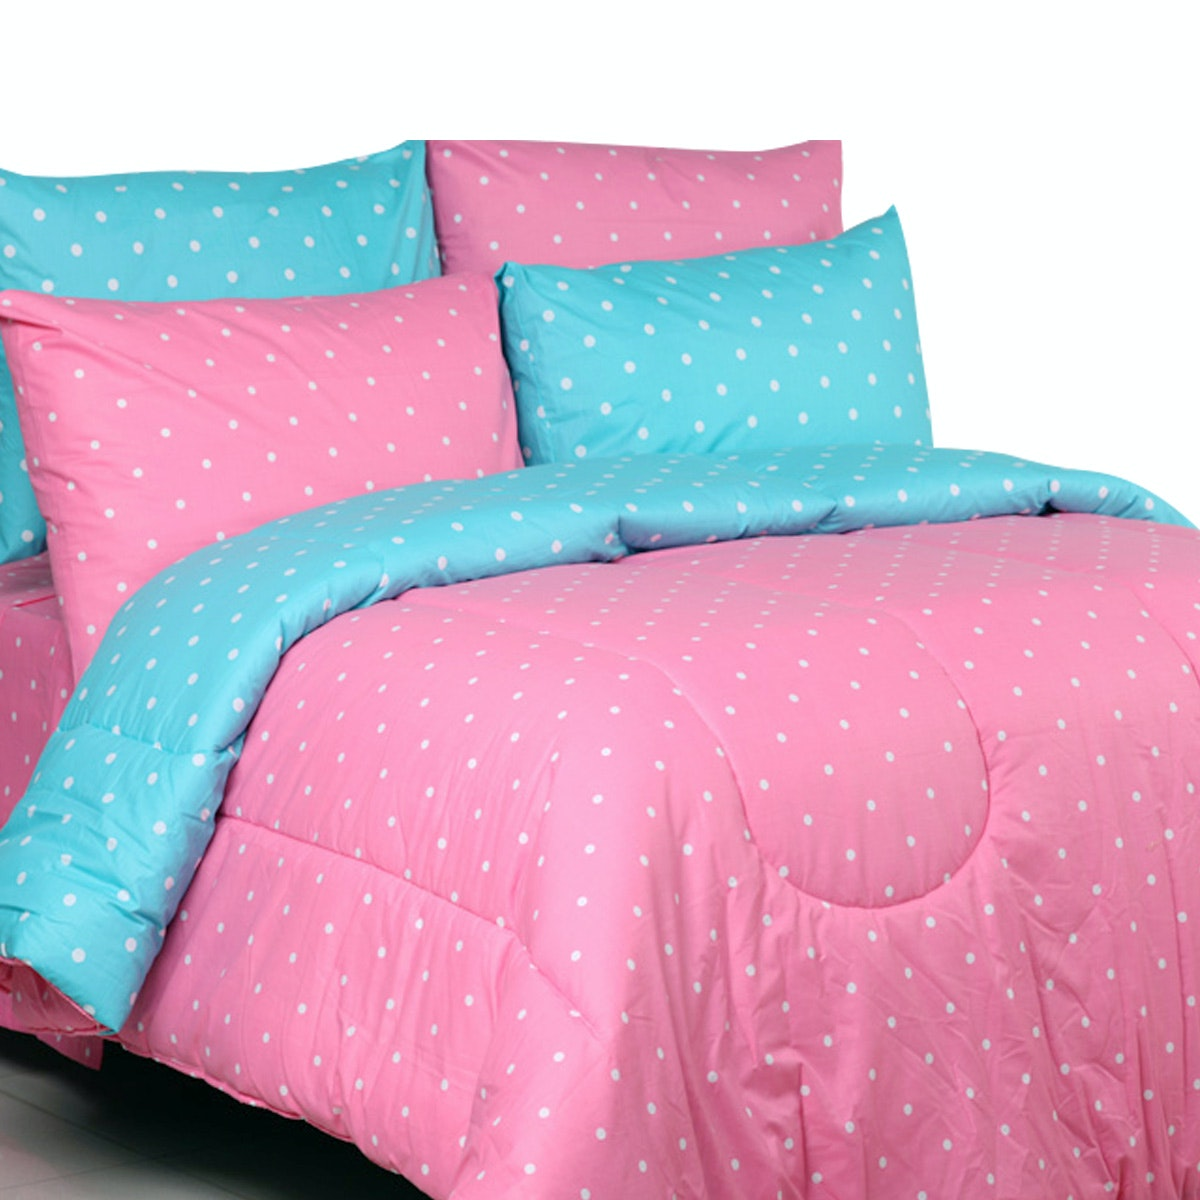 Sierra Bed Cover Dan Sprei Dottie Candy Mix Dottie Tosca 120x200